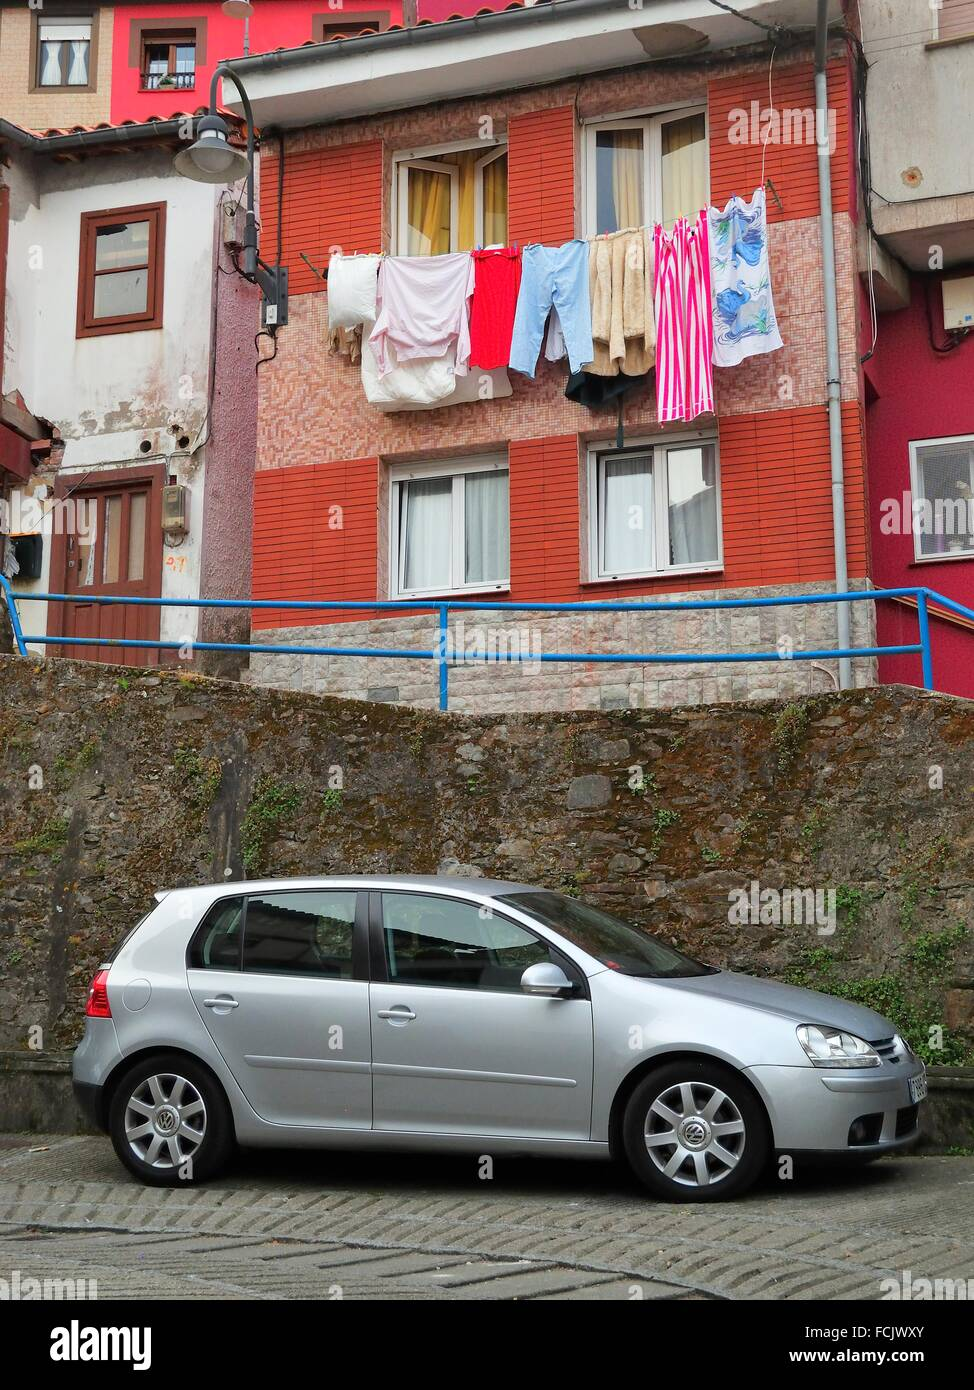 laundry drying and parked car, Cudillero, Asturias, Spain. - Stock Image